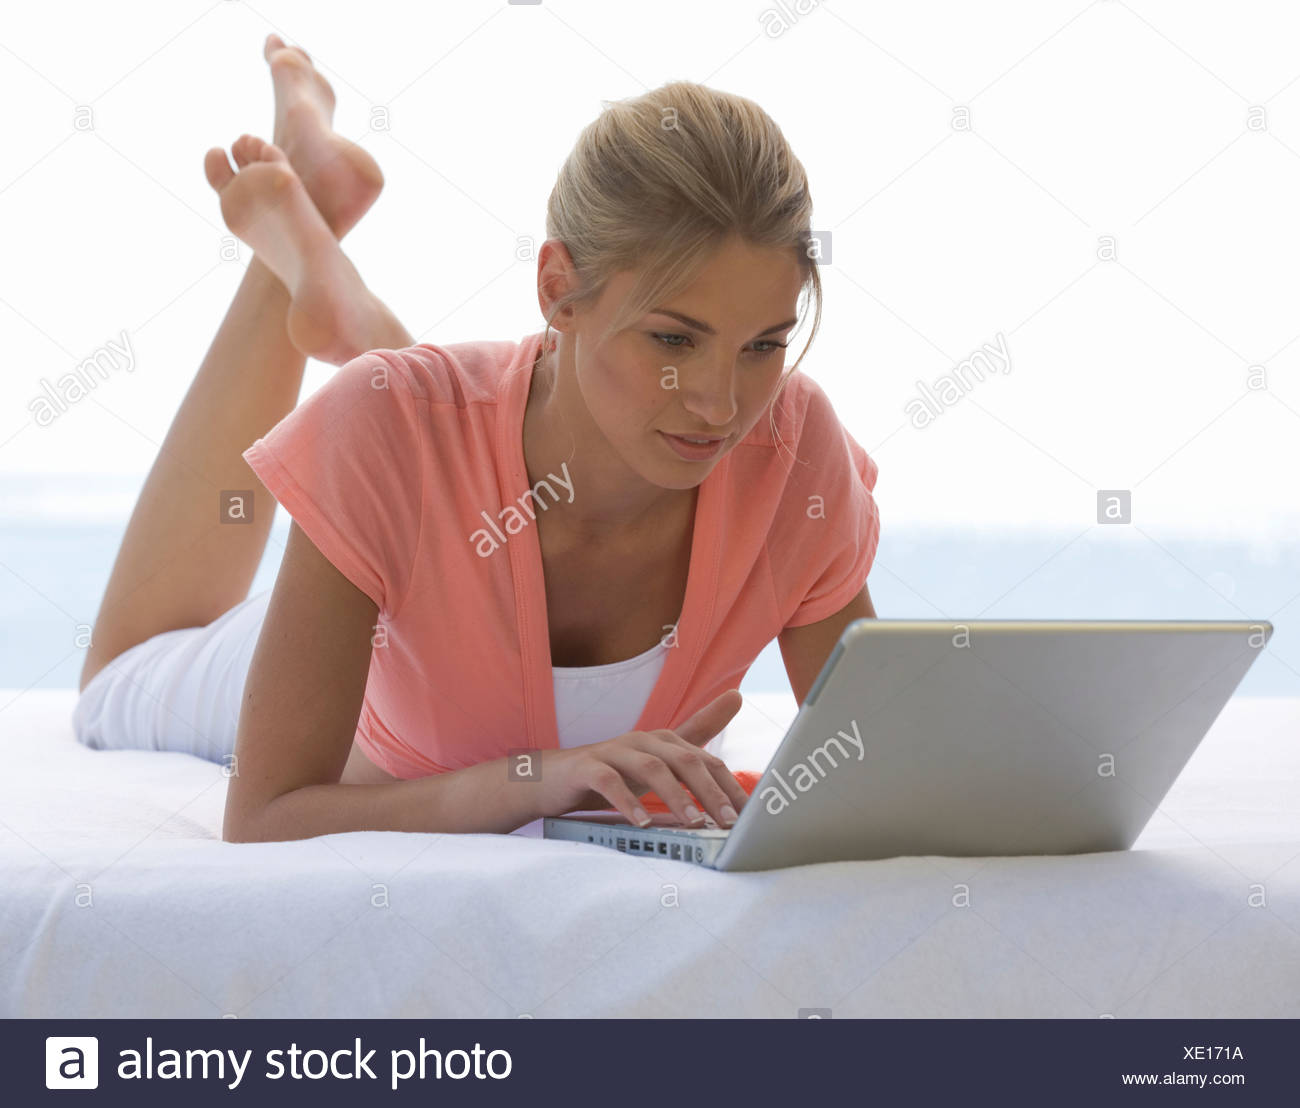 A young woman working on a laptop - Stock Image